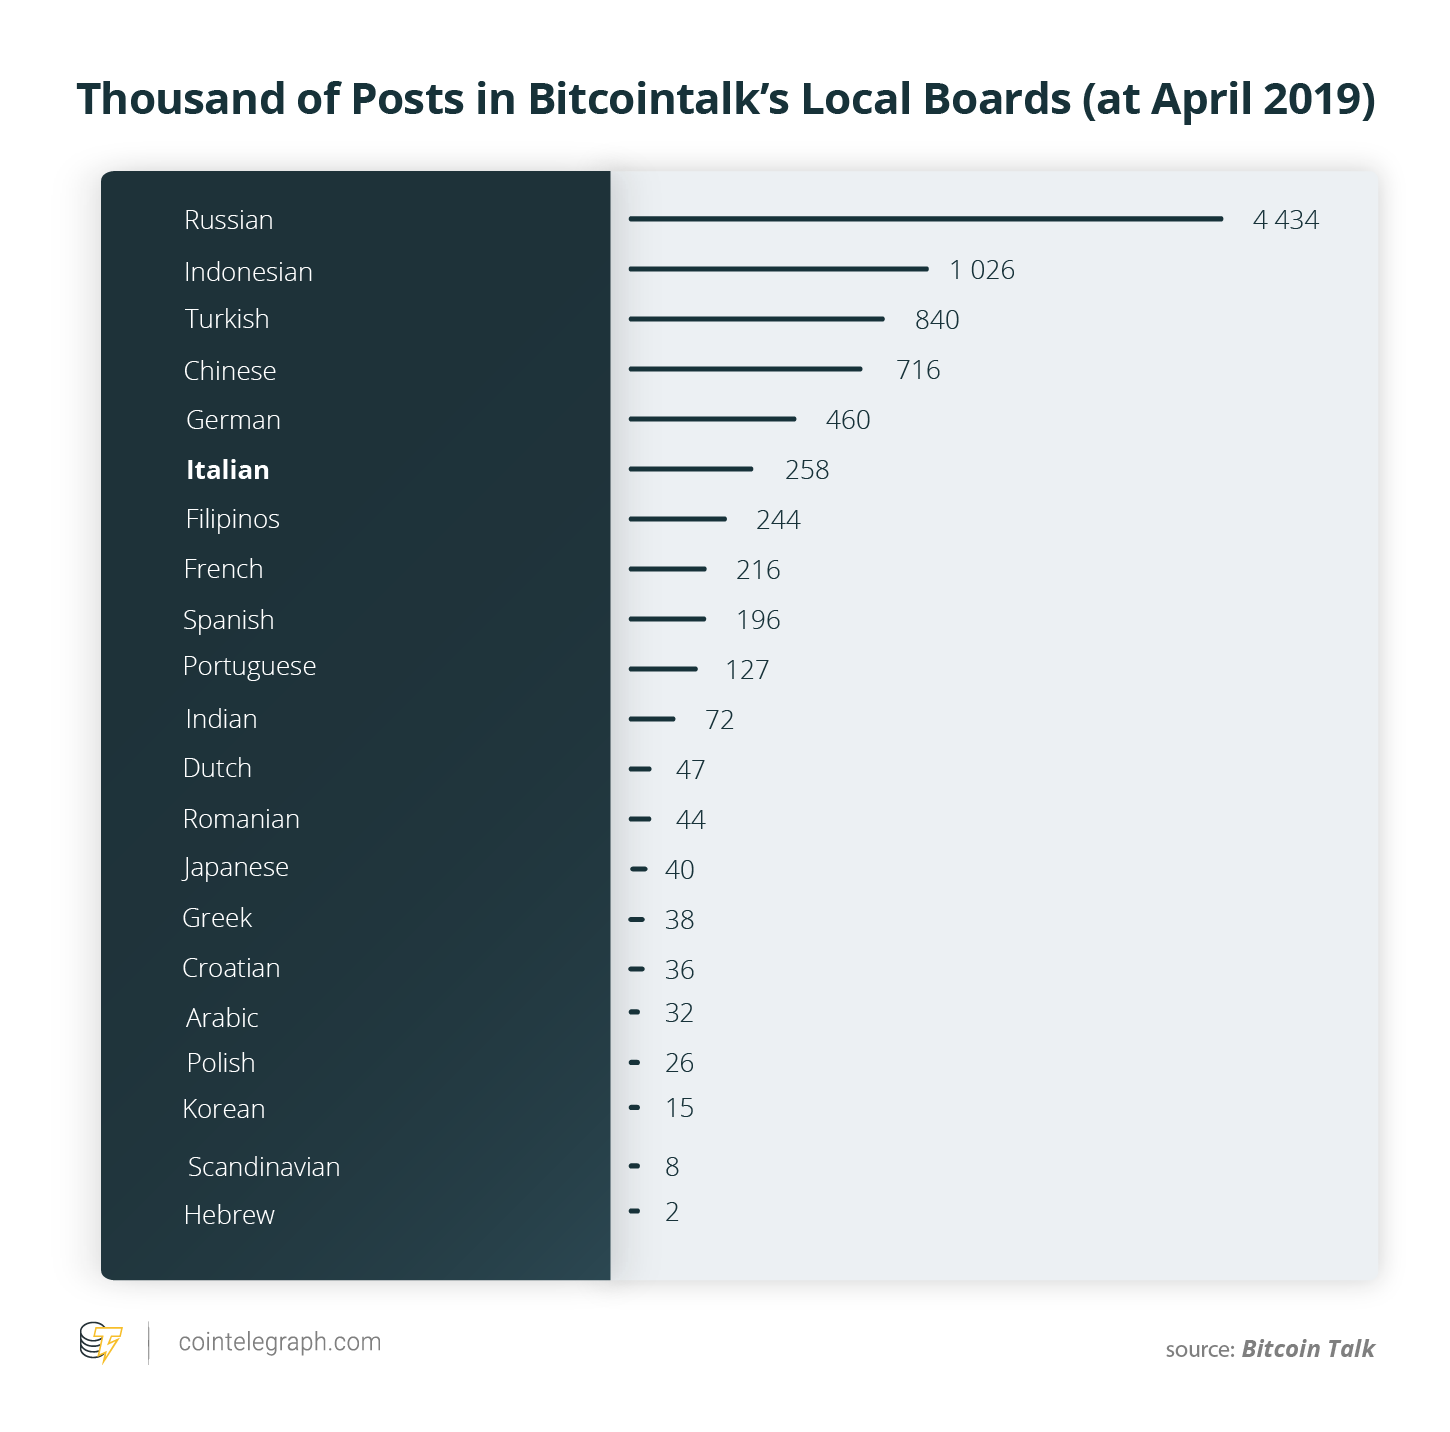 Thousand of Posts in Bitcointalk's Local Boards (at April 2019)